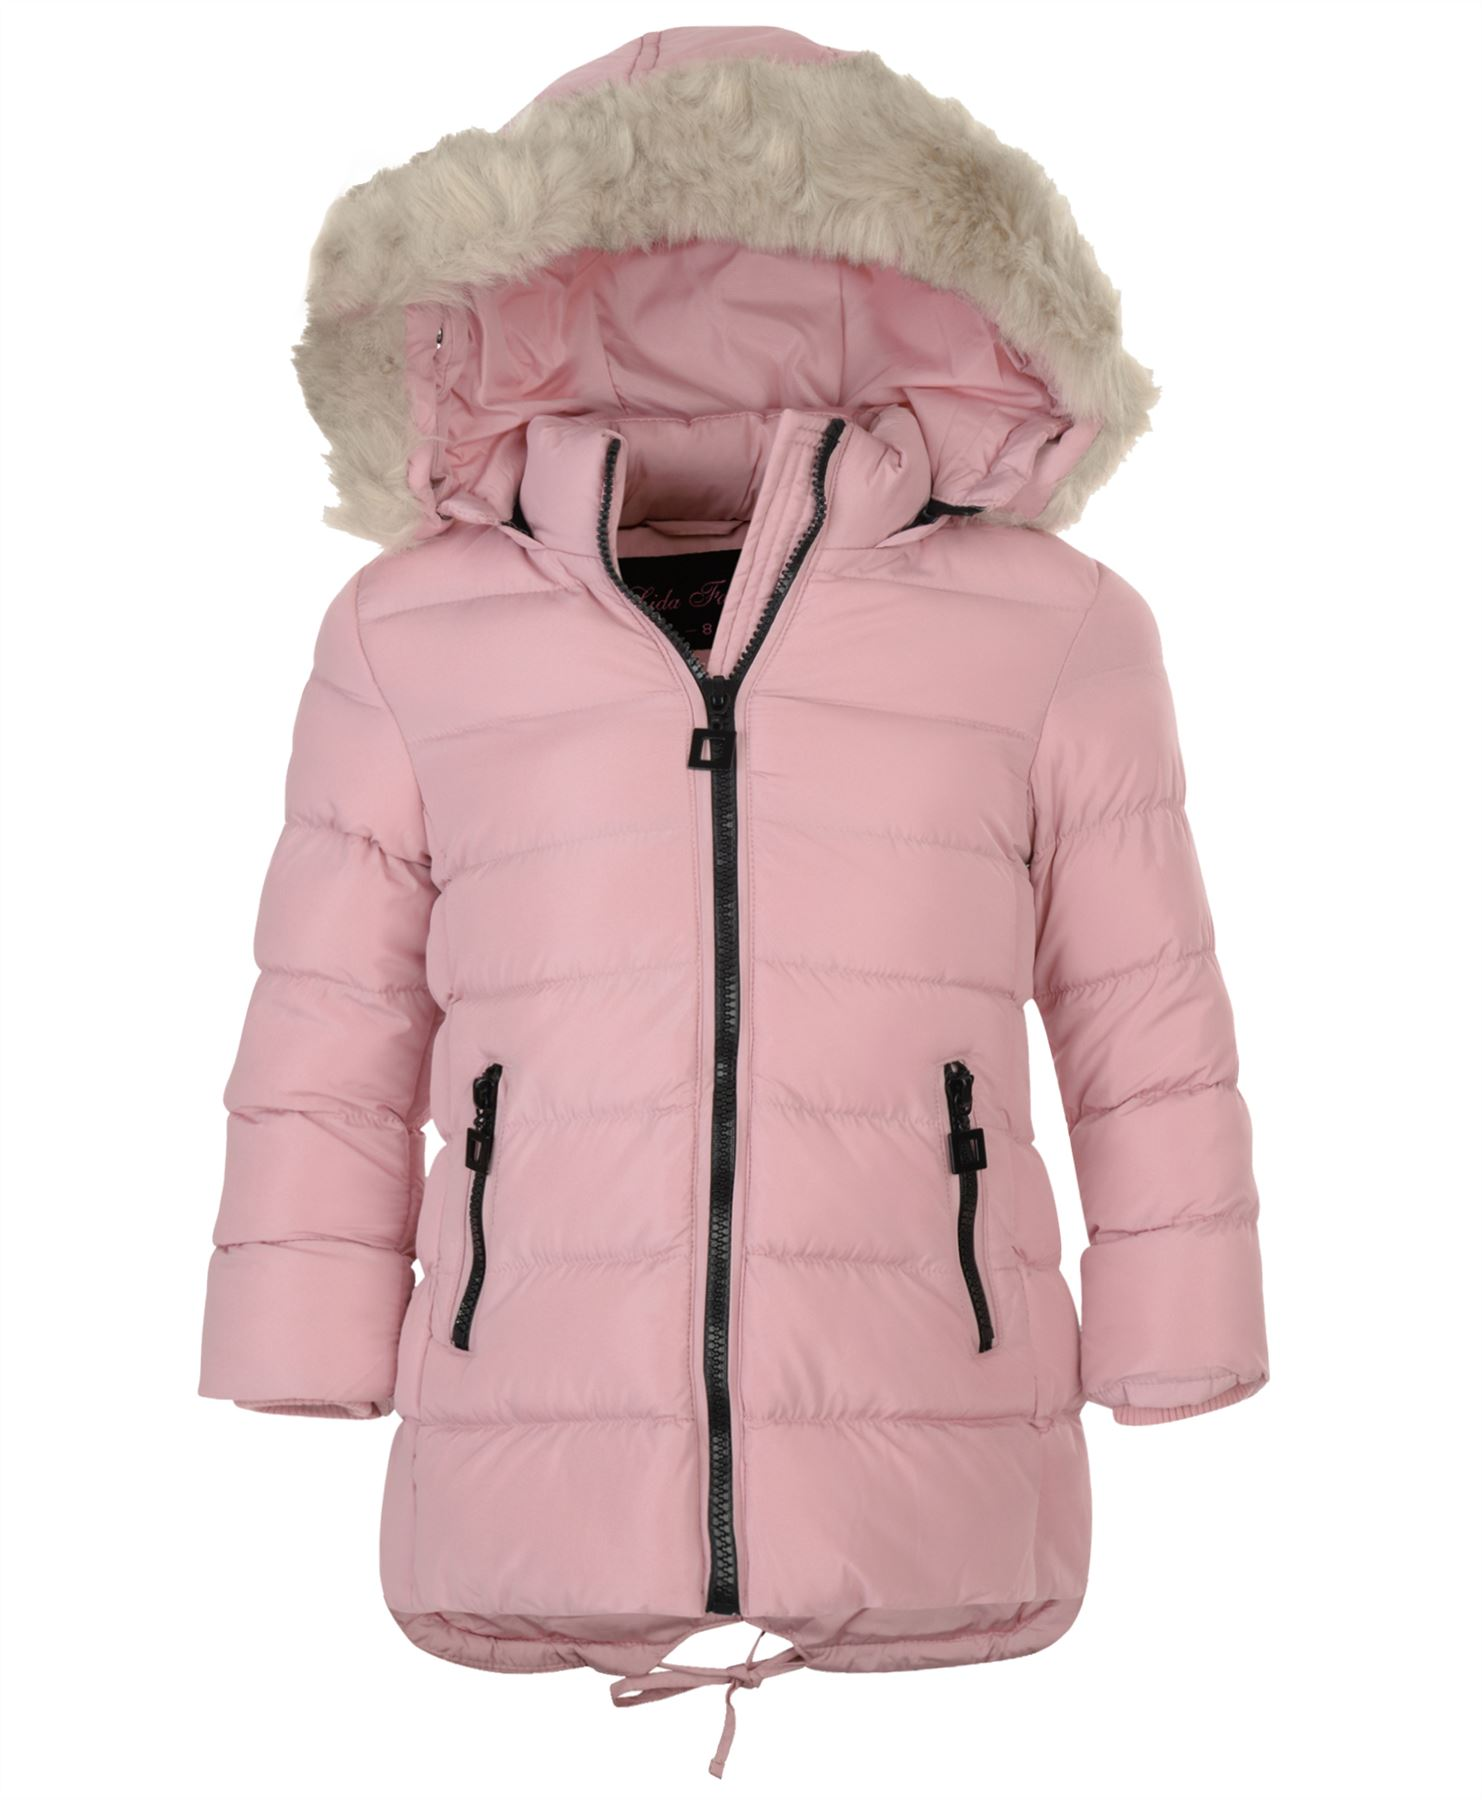 Shop Kids' Coats & Jackets in the Kids' Outerwear department at Tractor Supply Co.